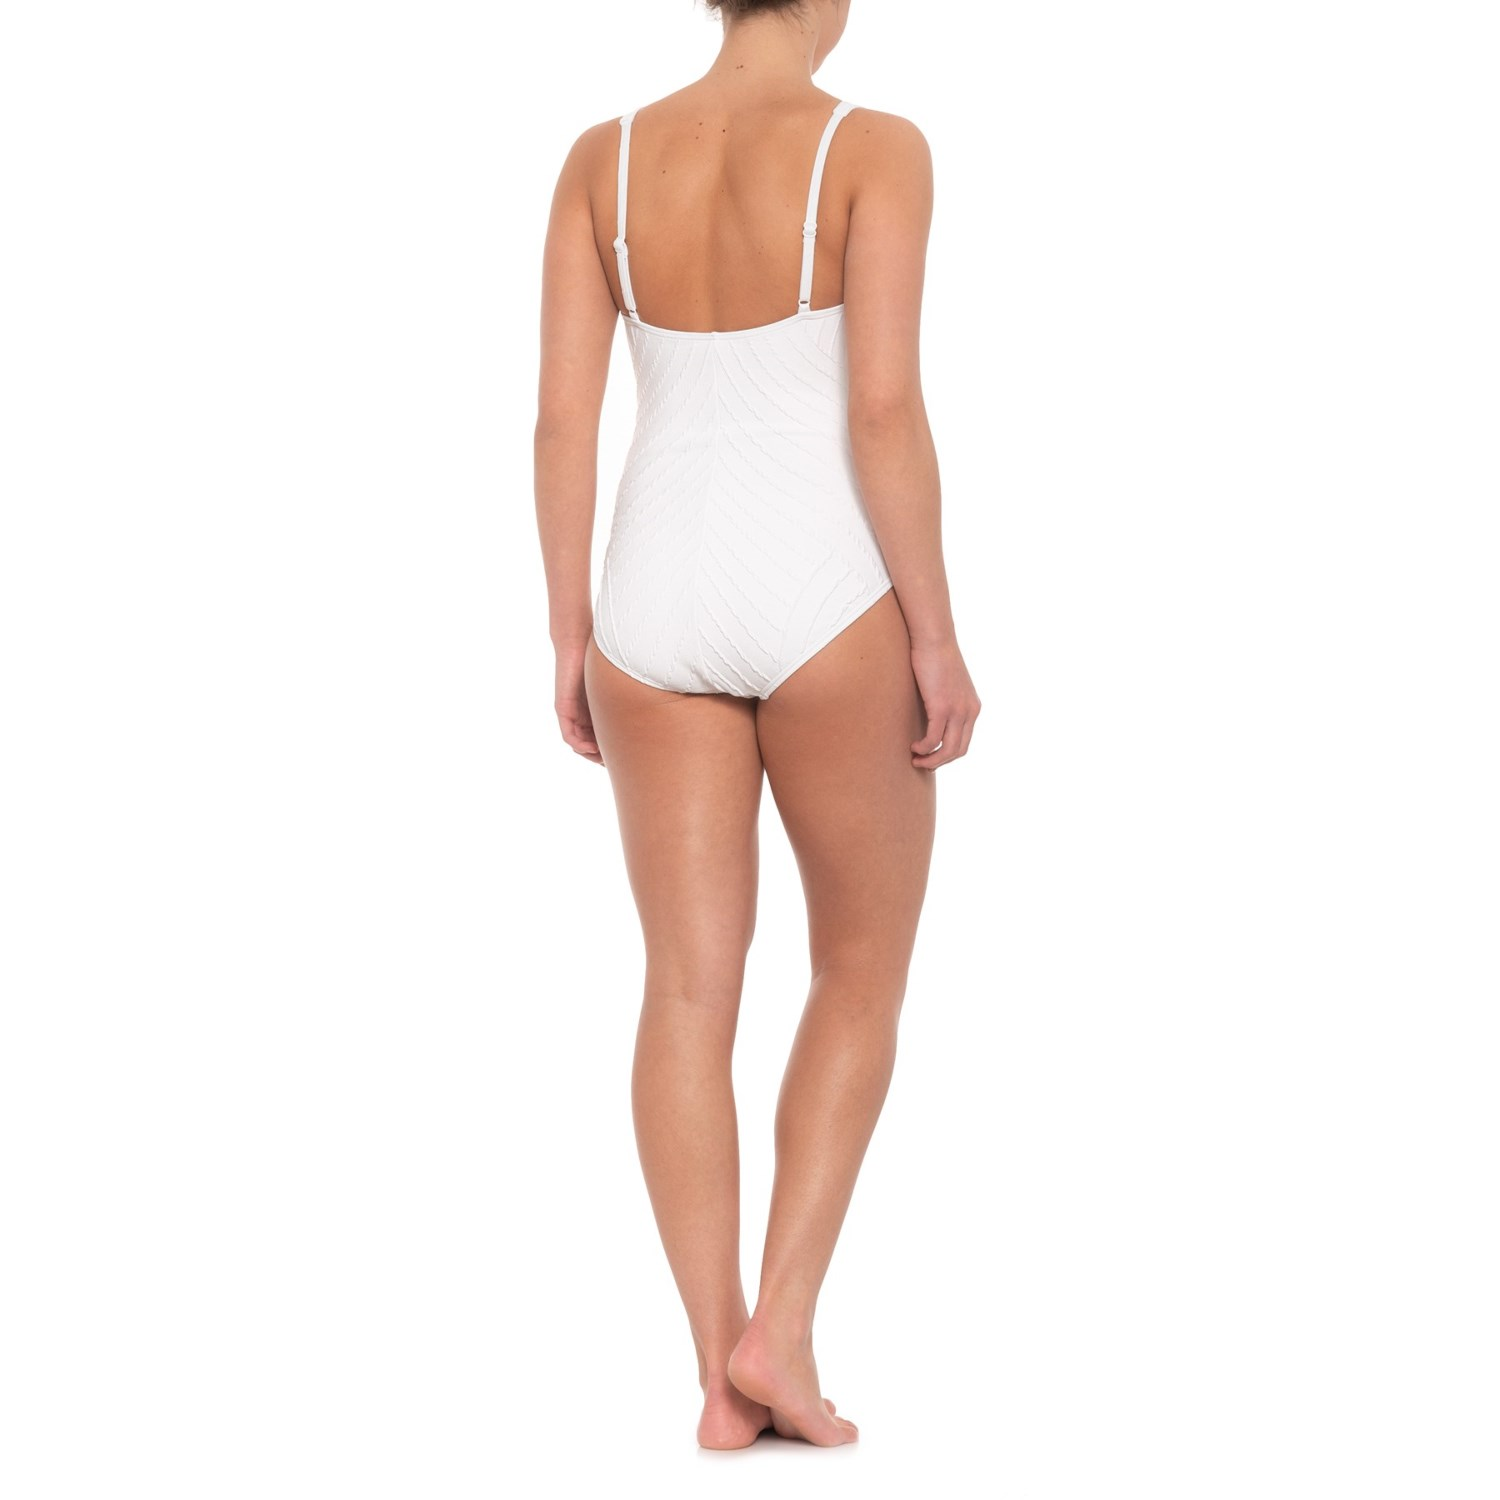 f50c8bf7d90 Coco Reef Contours Classic Cut One-Piece Swimsuit (For Women) - Save 71%